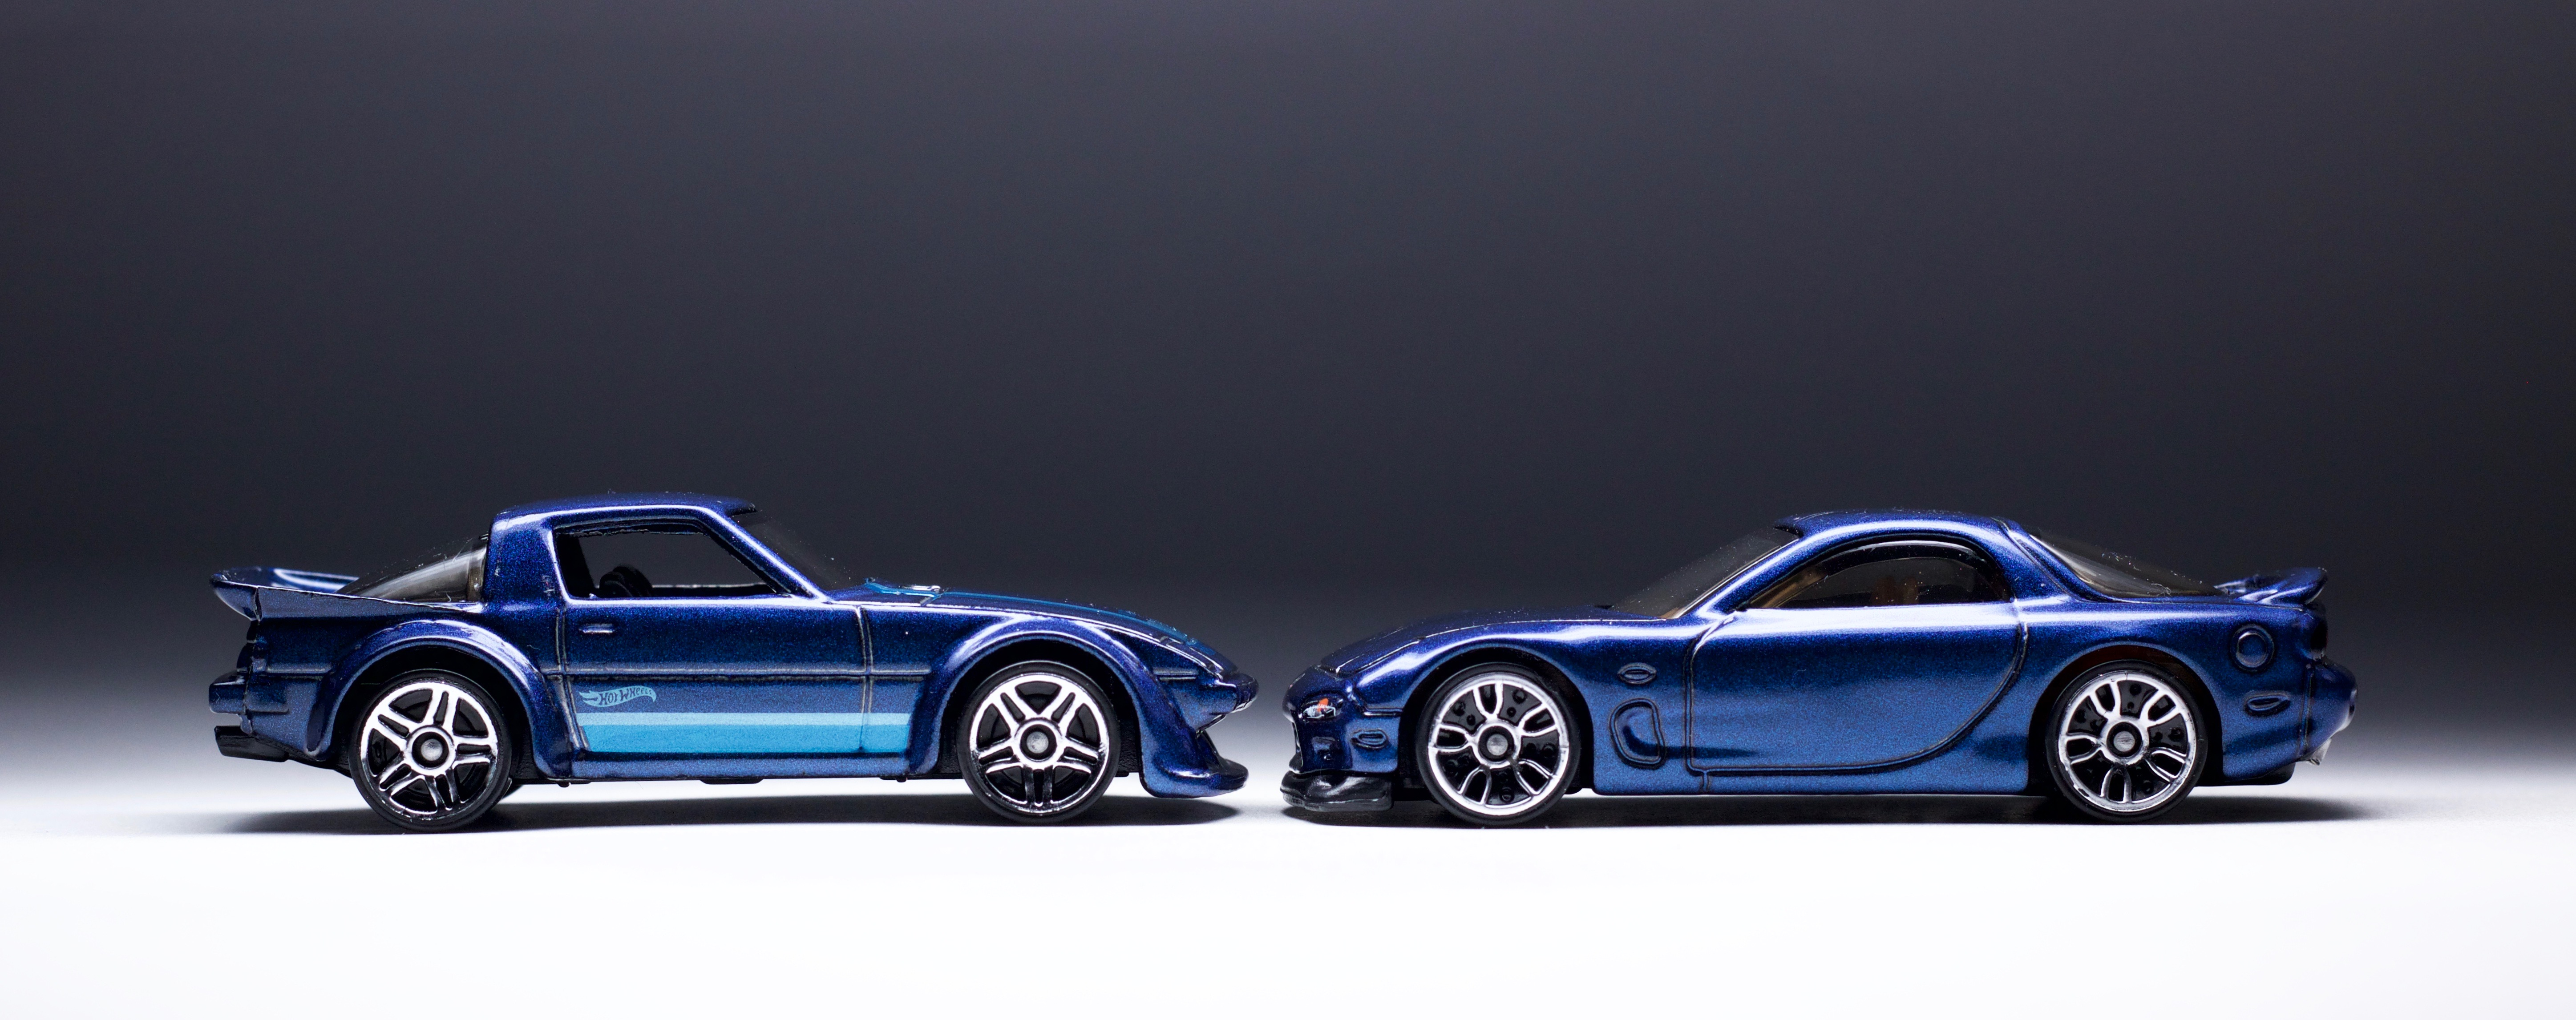 hot wheels did everything right with the new '95 mazda rx-7 – the